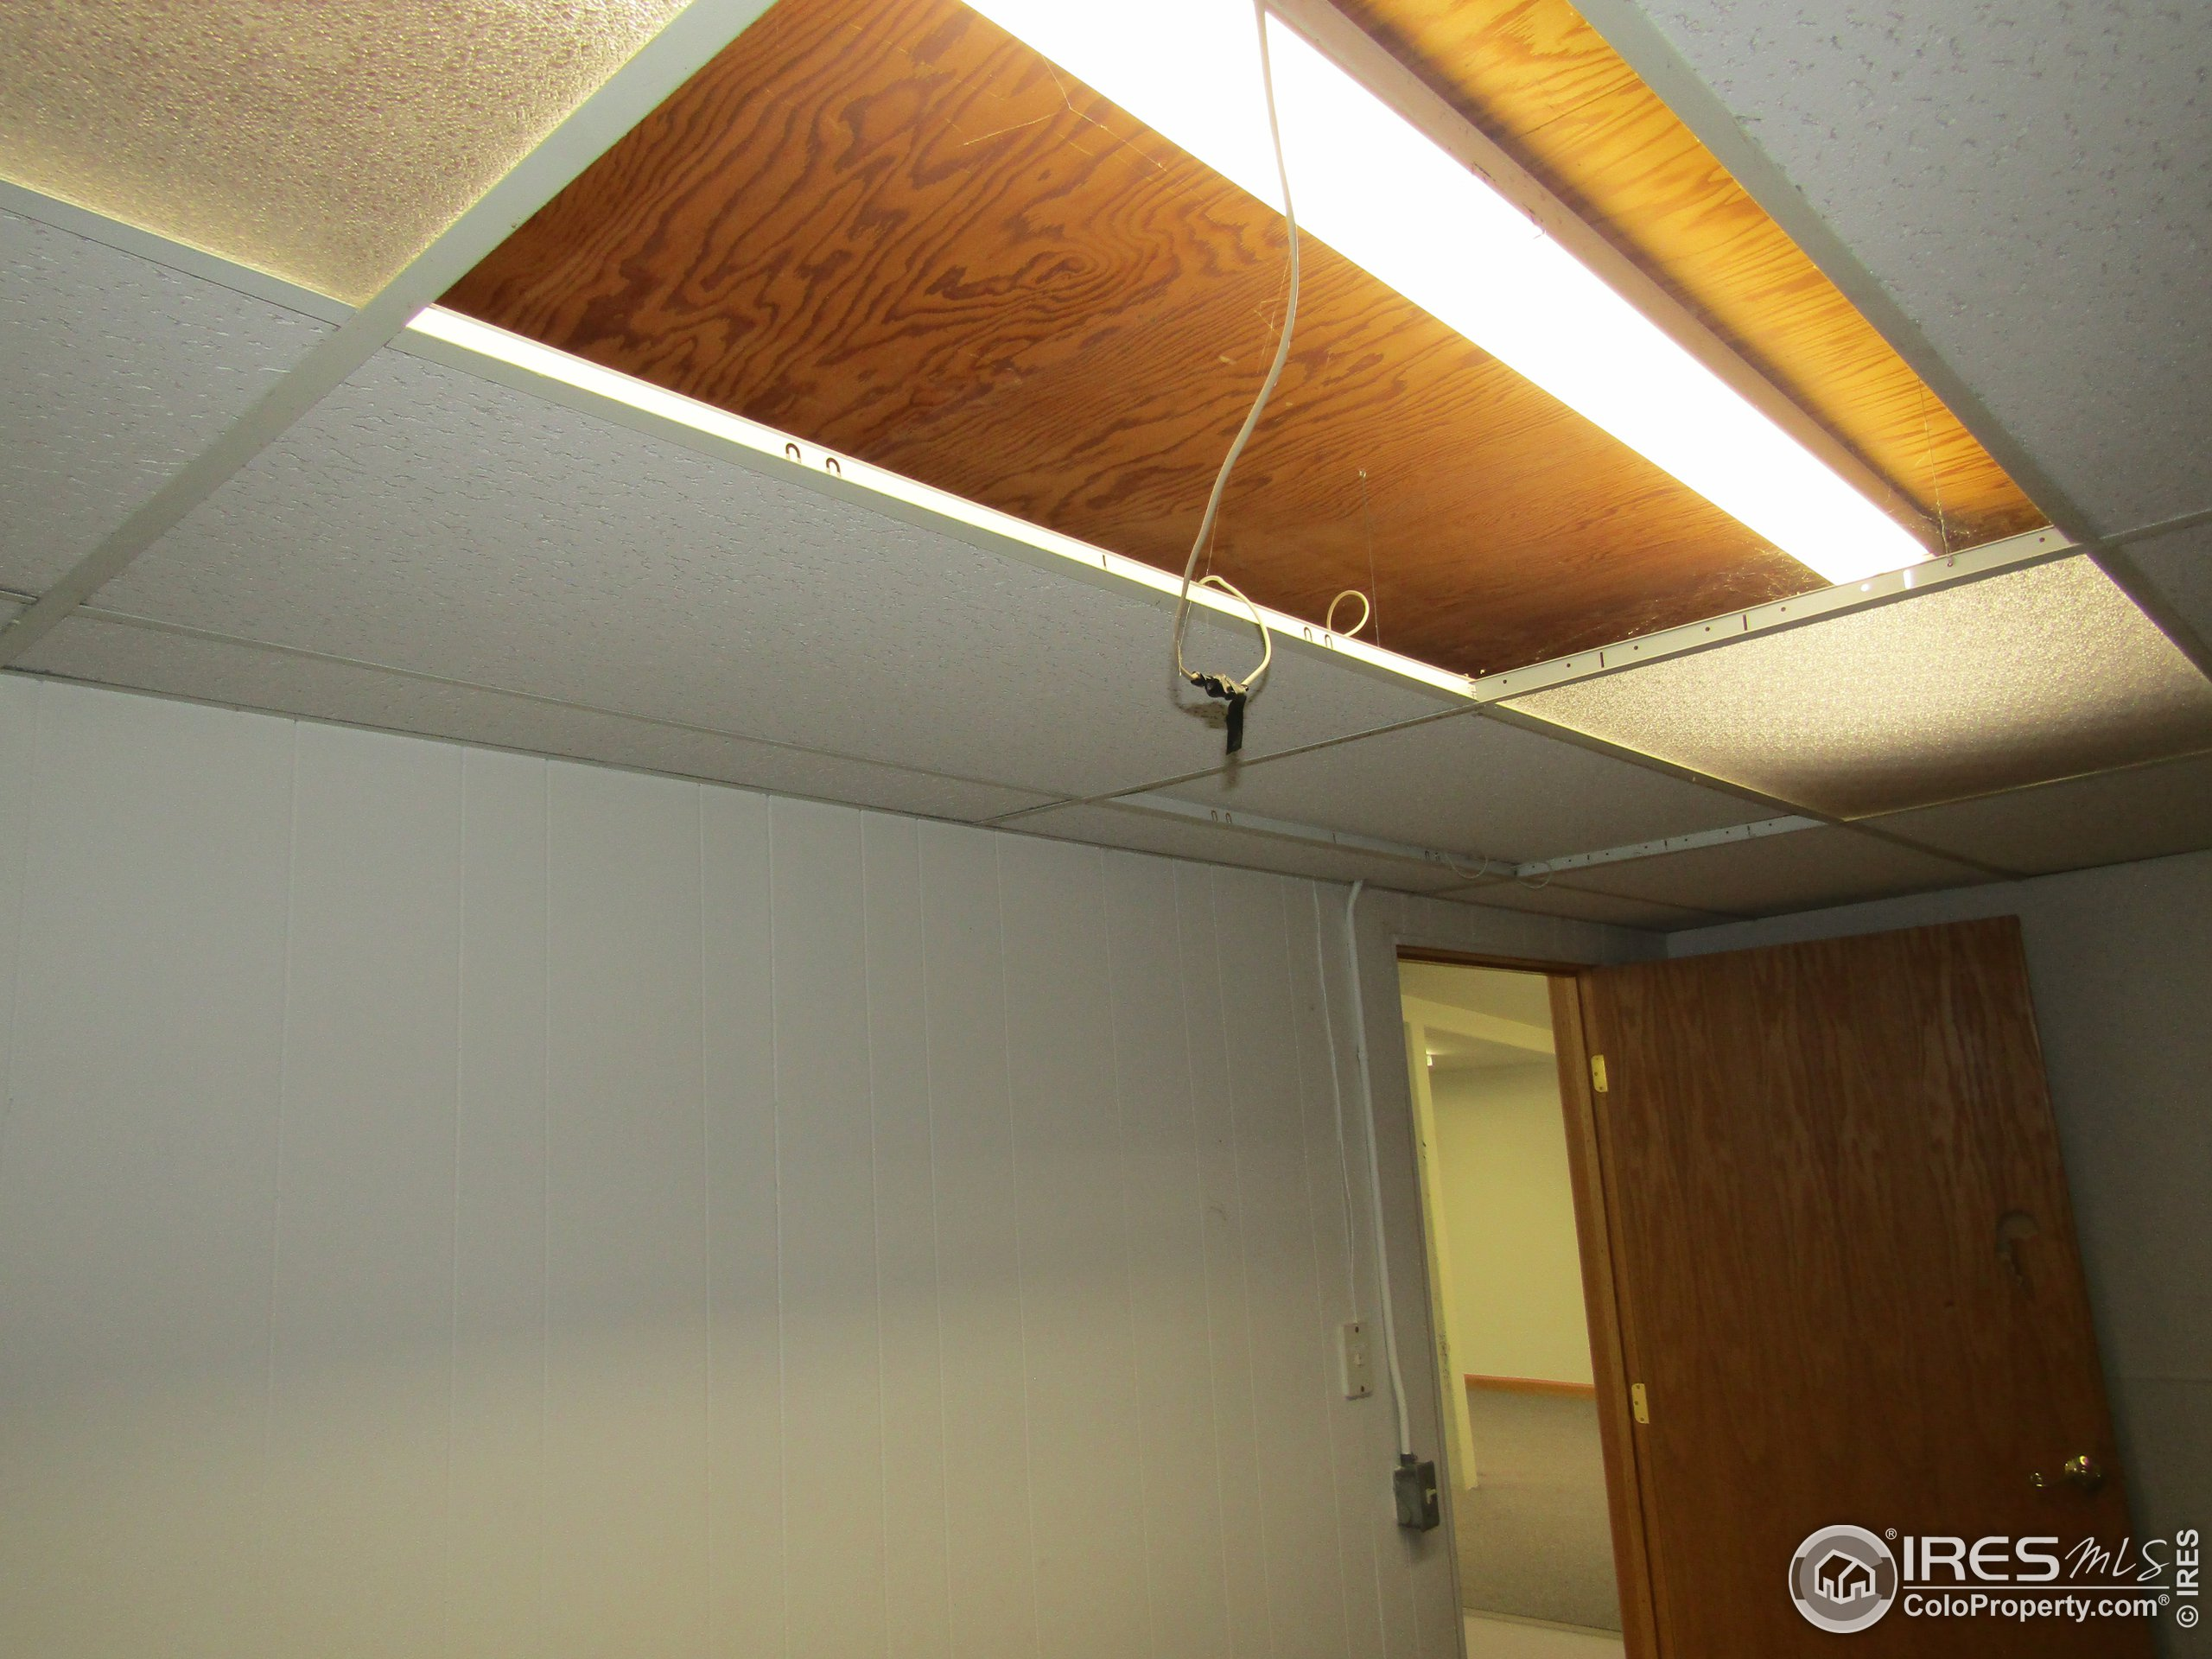 Approx 1 foot of clearance between drop ceiling and actual ceiling